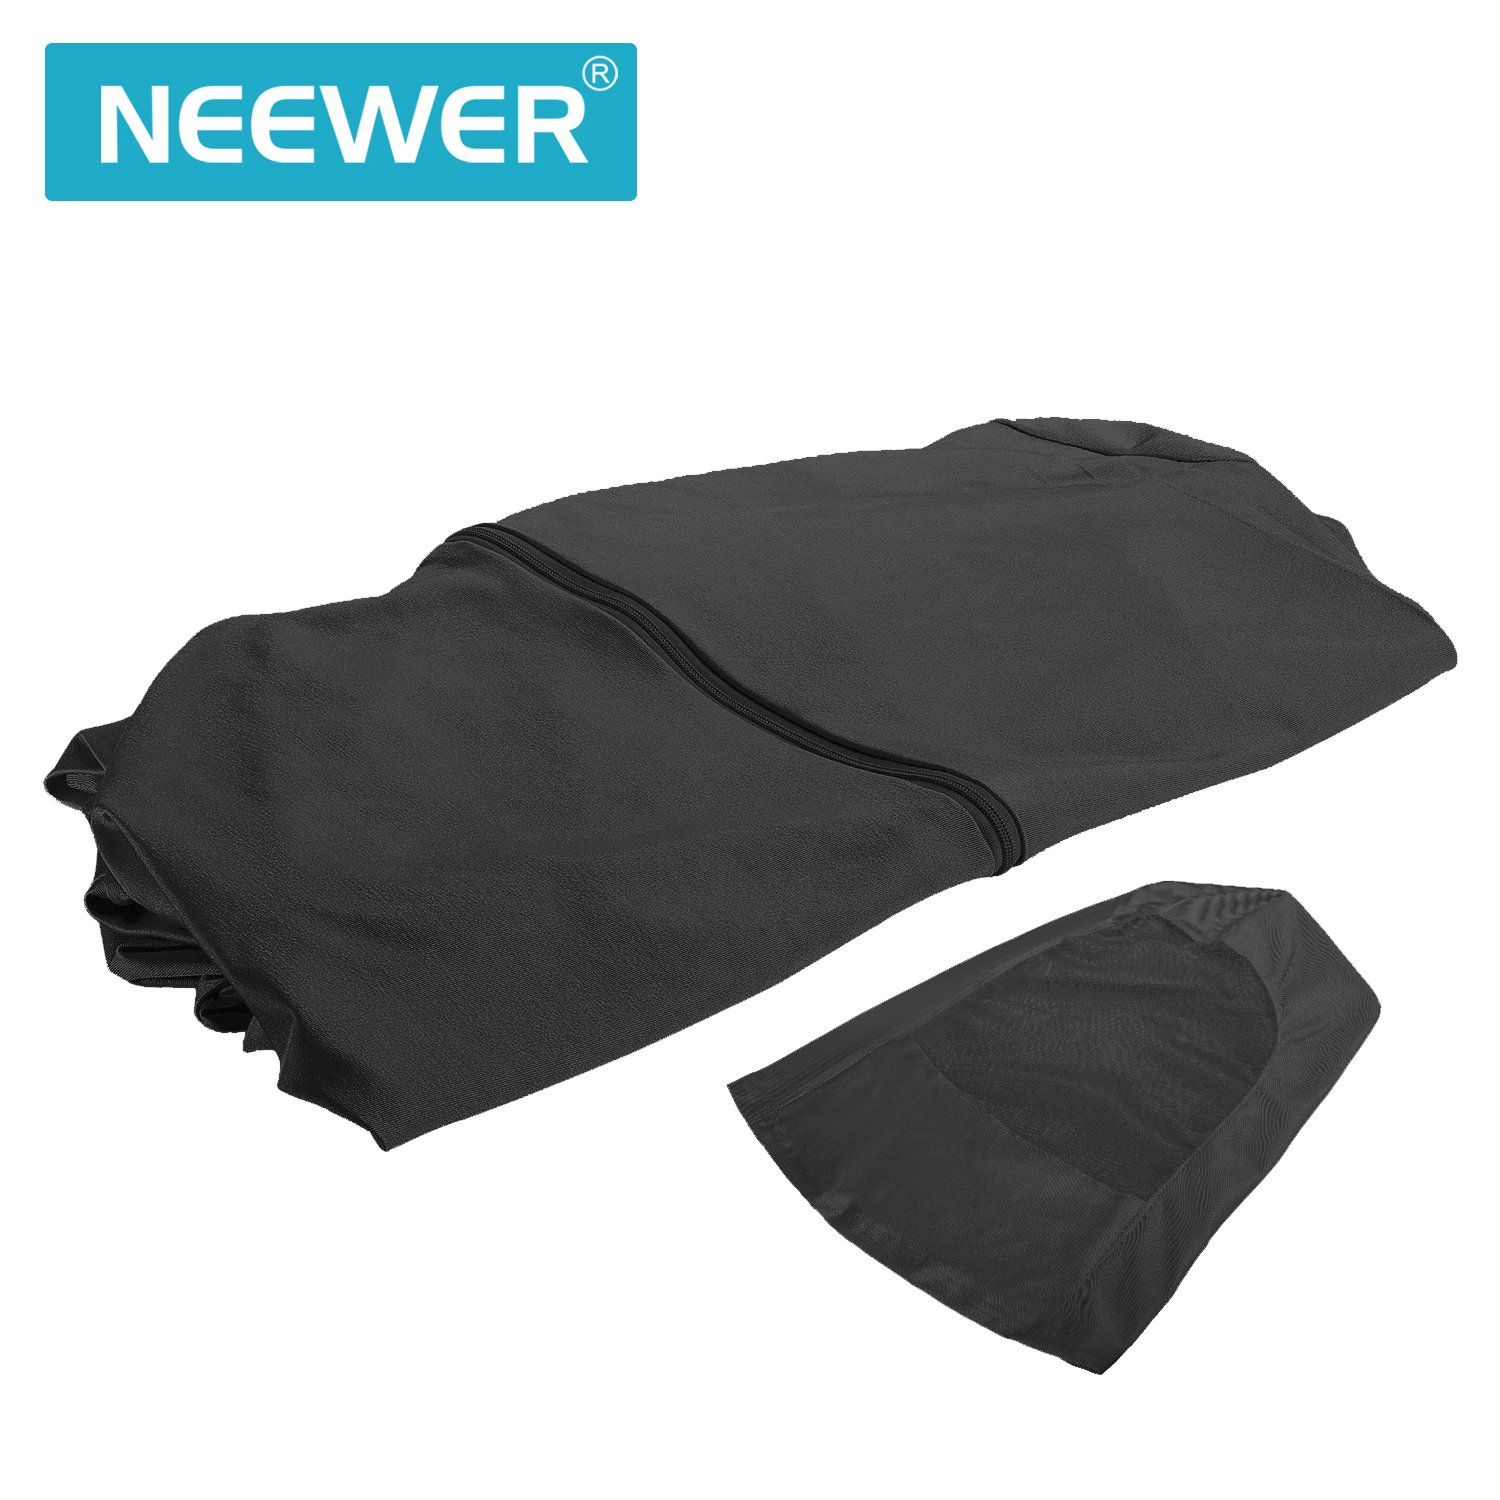 Neewer Photo Video Full Body Screen Suit, See-Through Breath-Through Soft Elastic Body Suit for Photo Video Invisible Effect in Digital Photography ...